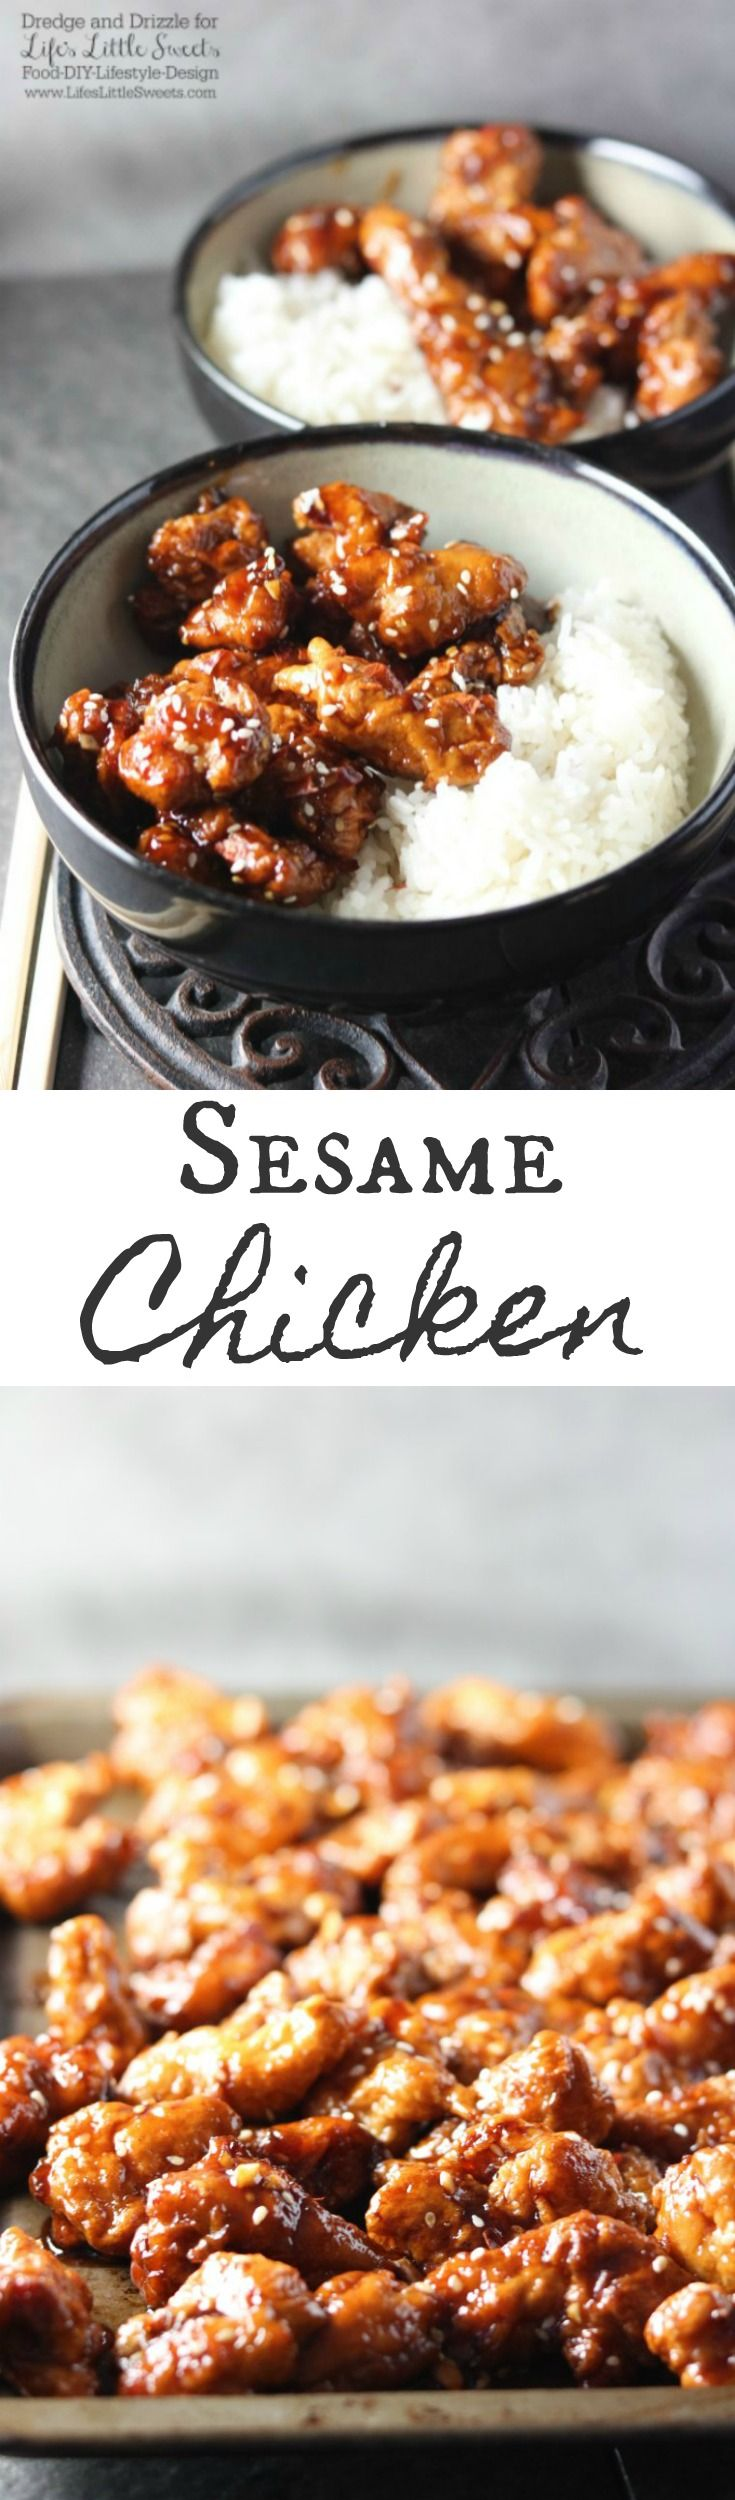 Sesame Chicken Chinese Takeout Dinner Savory Recipe Poultry Recipes Cooking Recipes Food